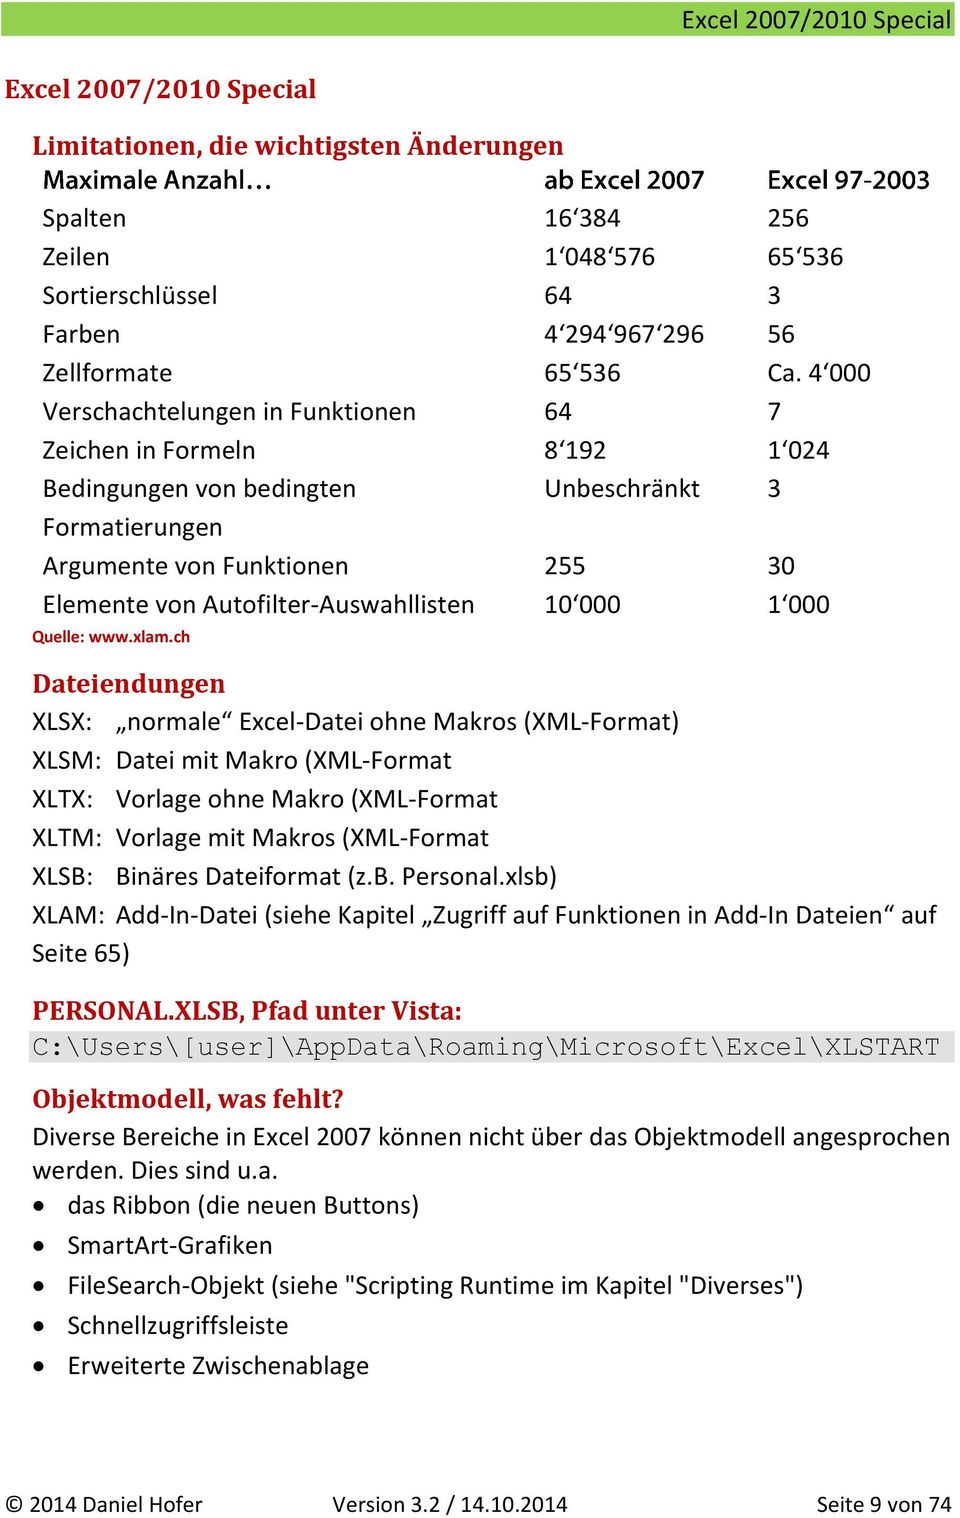 Daniel Hofer Excel VBA Referenz - PDF